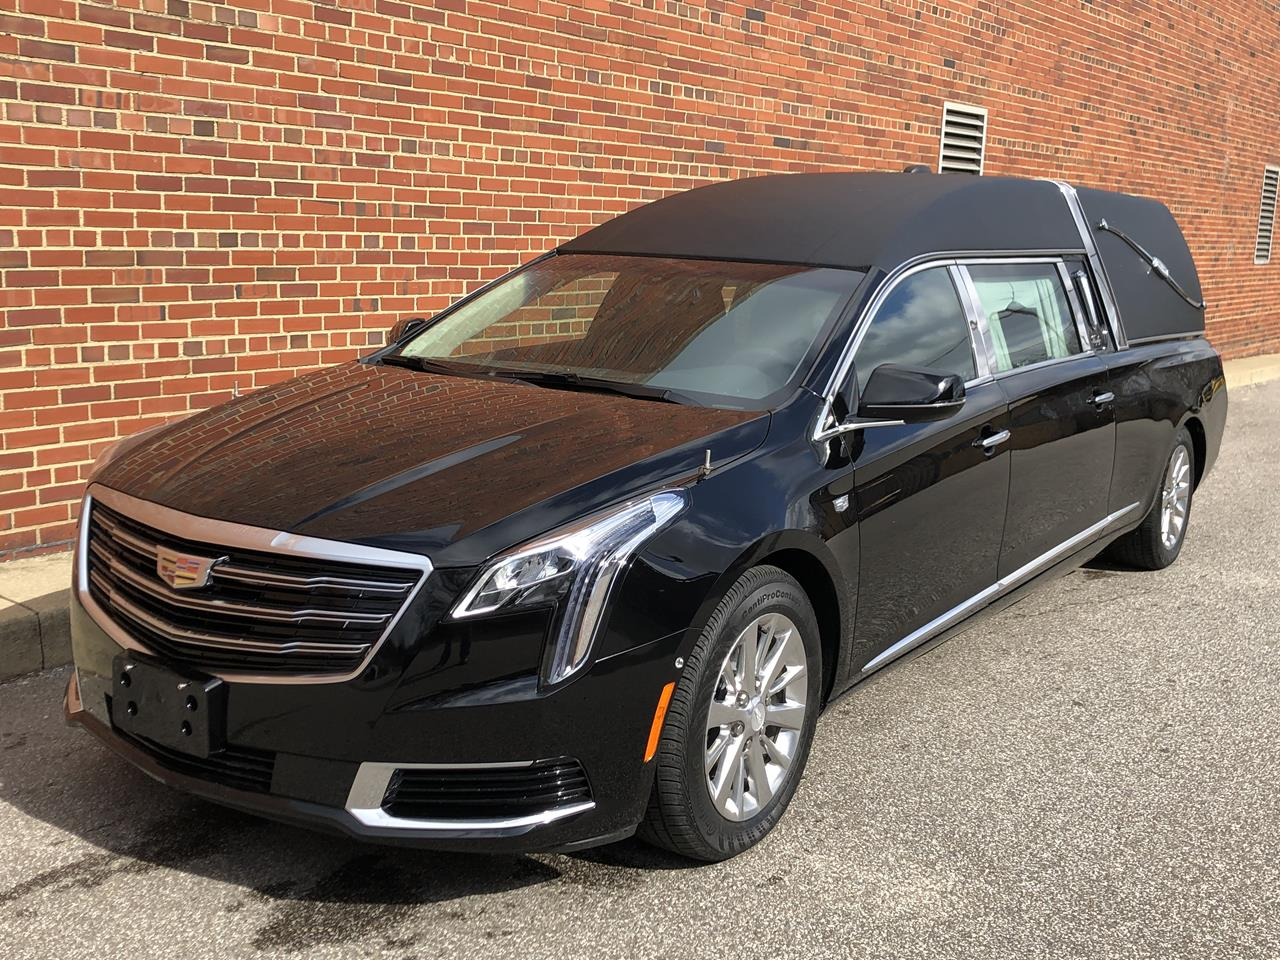 2019 Cadillac Eagle Kingsley Hearse 19 18